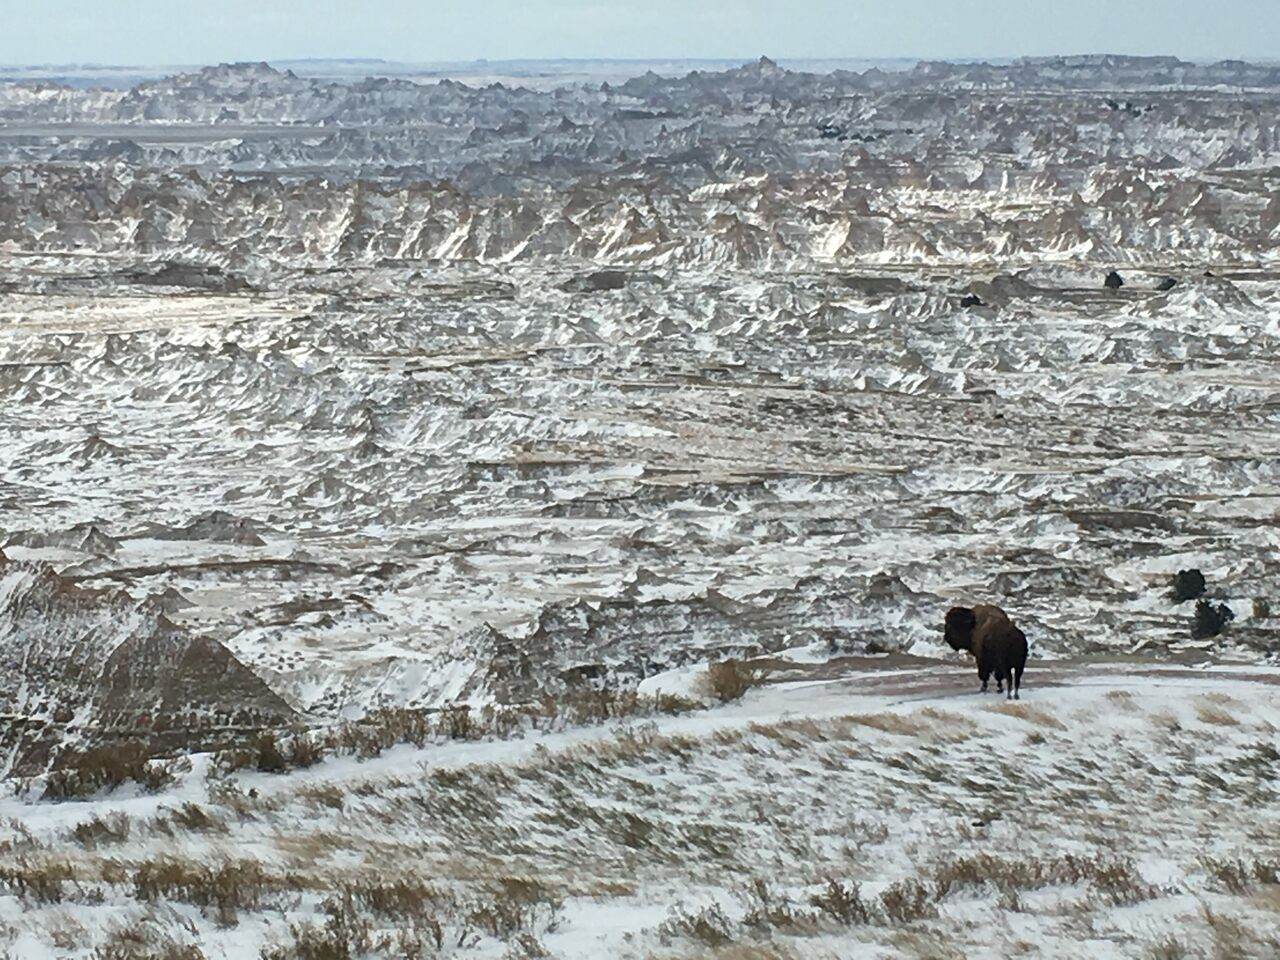 A lone bison bull overlooking the new tract of Badlands National Park where bison last roamed in 1877.